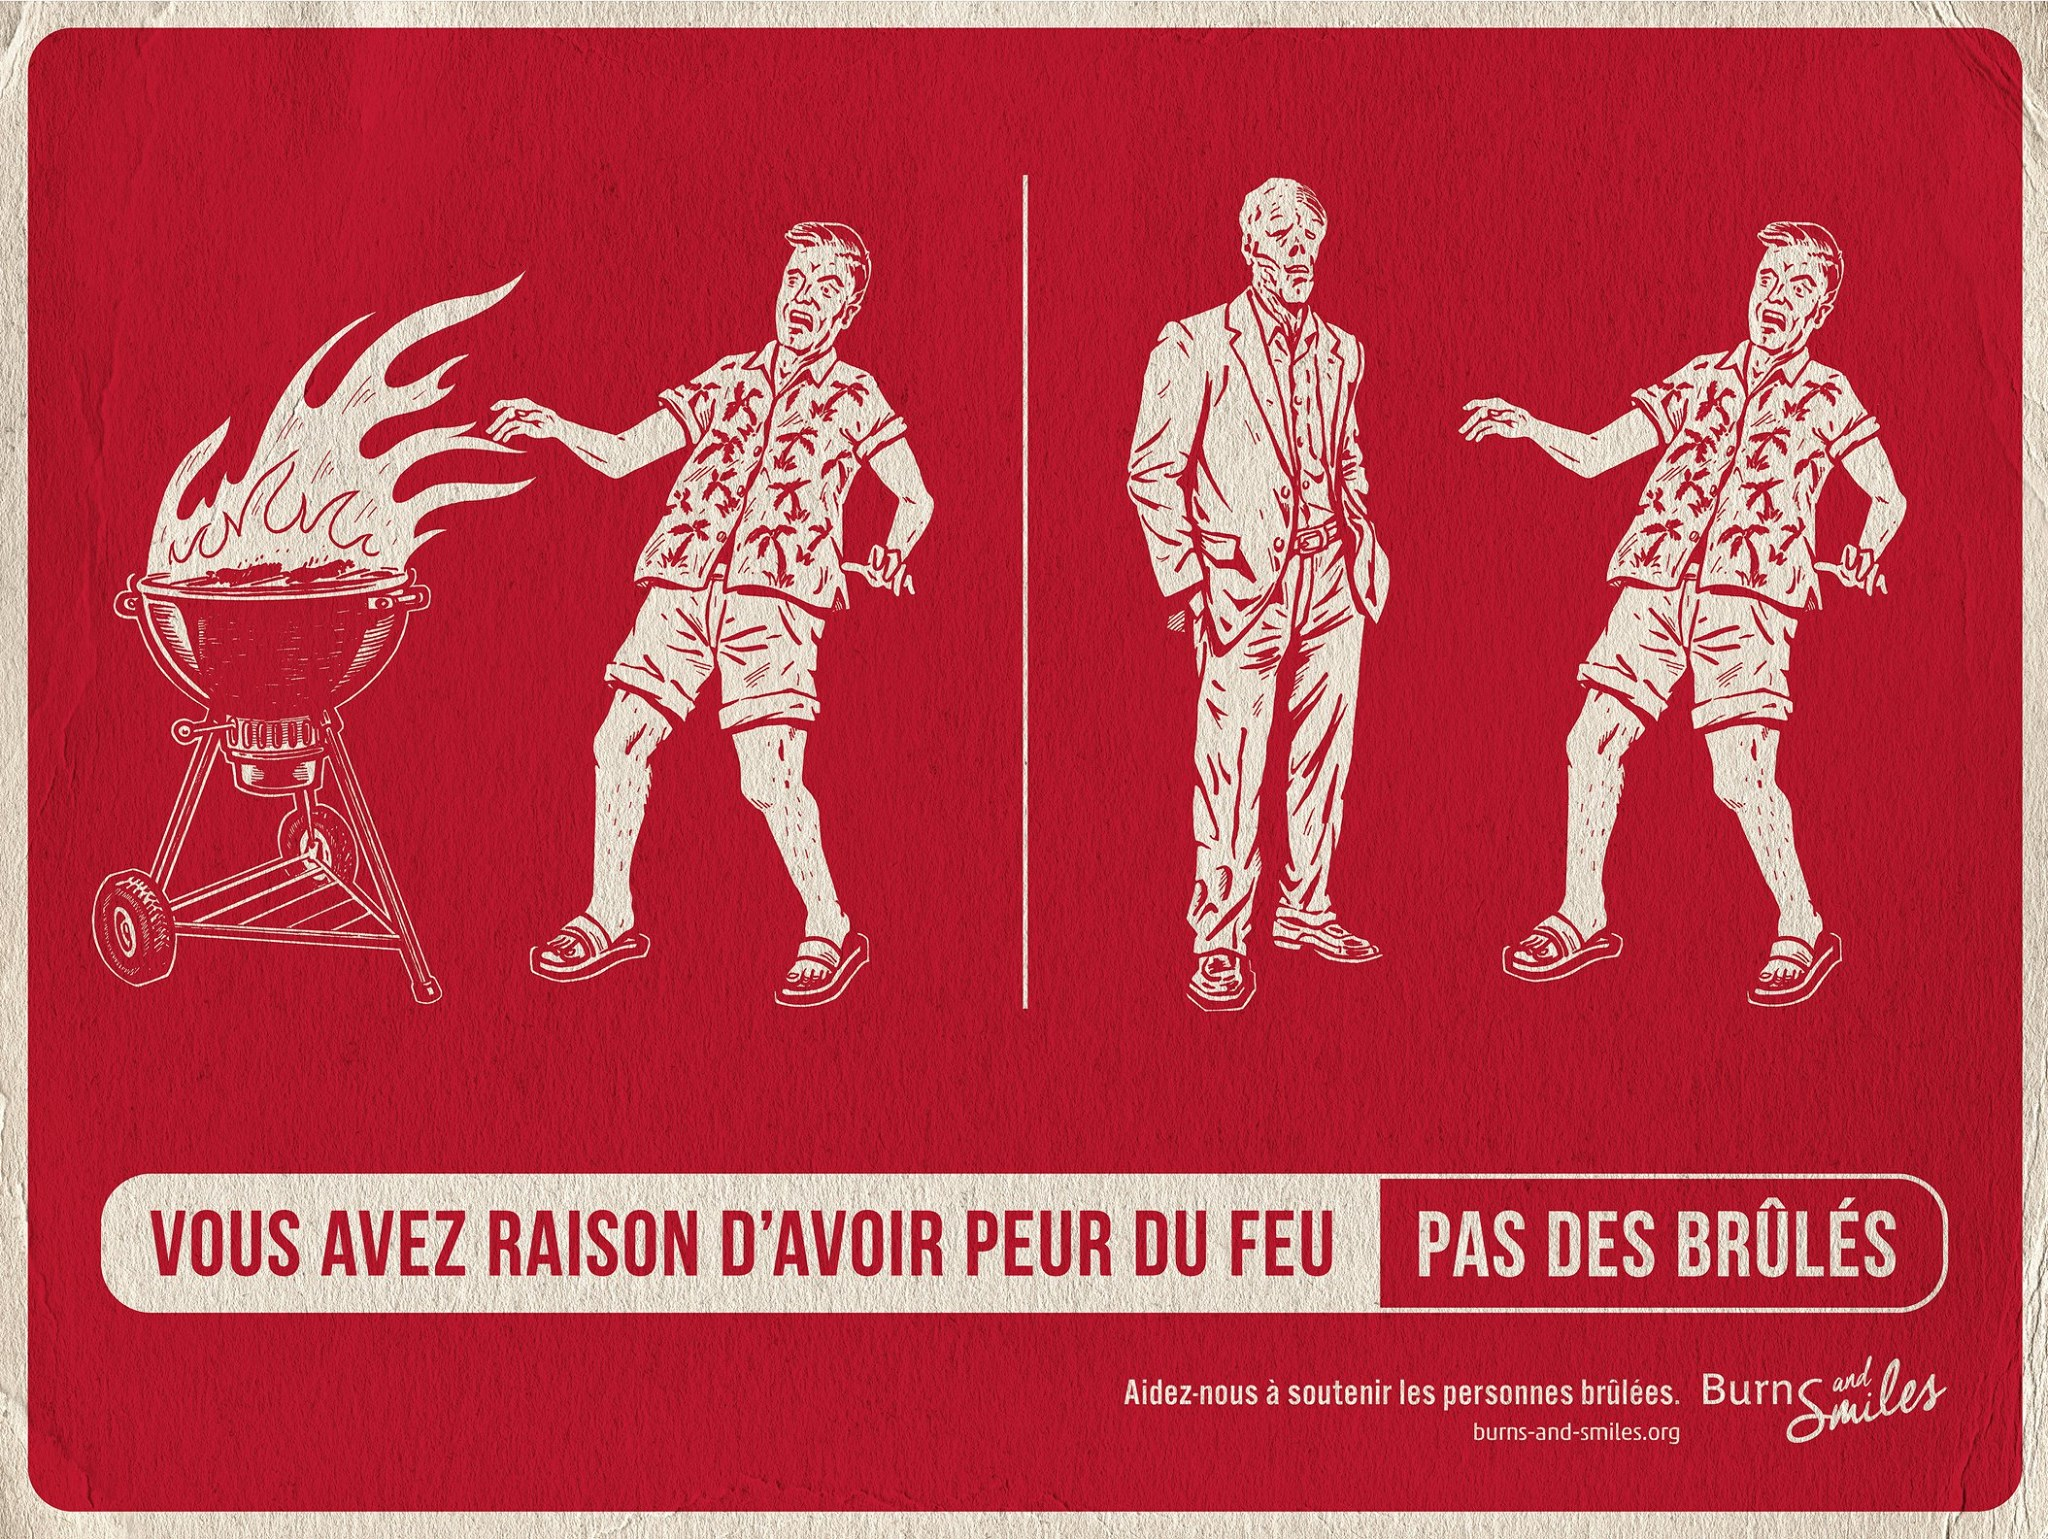 burns-and-smiles-publicite-communication-print-press-ad-feu-brules-burn-agence-tbwa-paris-6